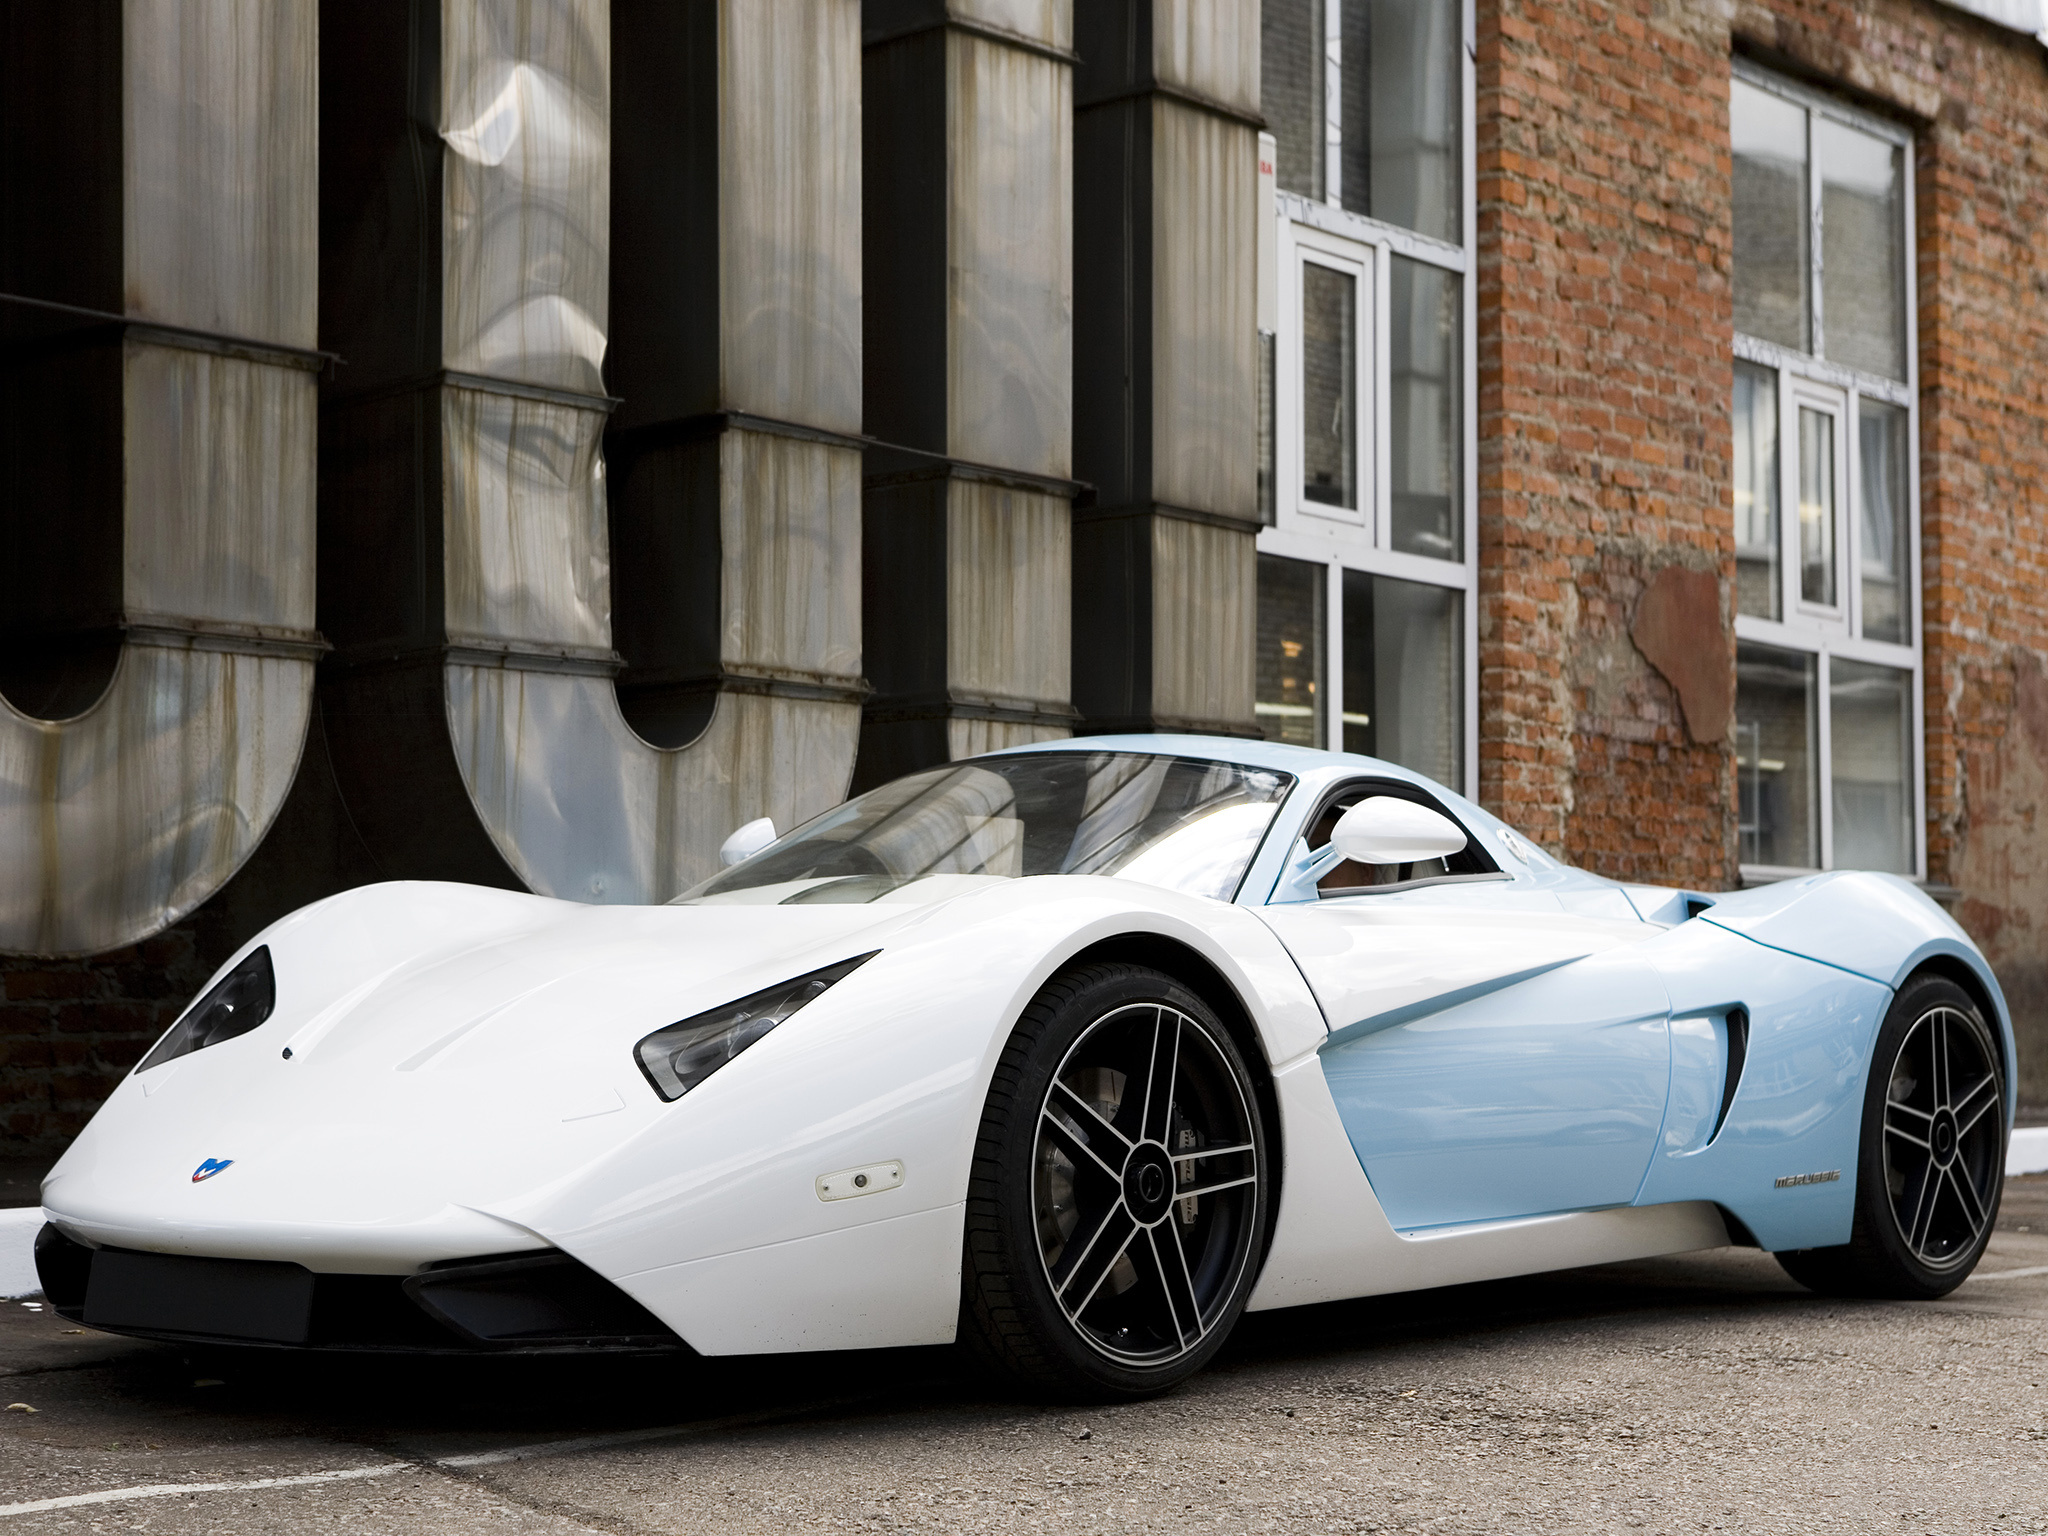 80348 download wallpaper Cars, Marussia, B1, Auto, Side View screensavers and pictures for free